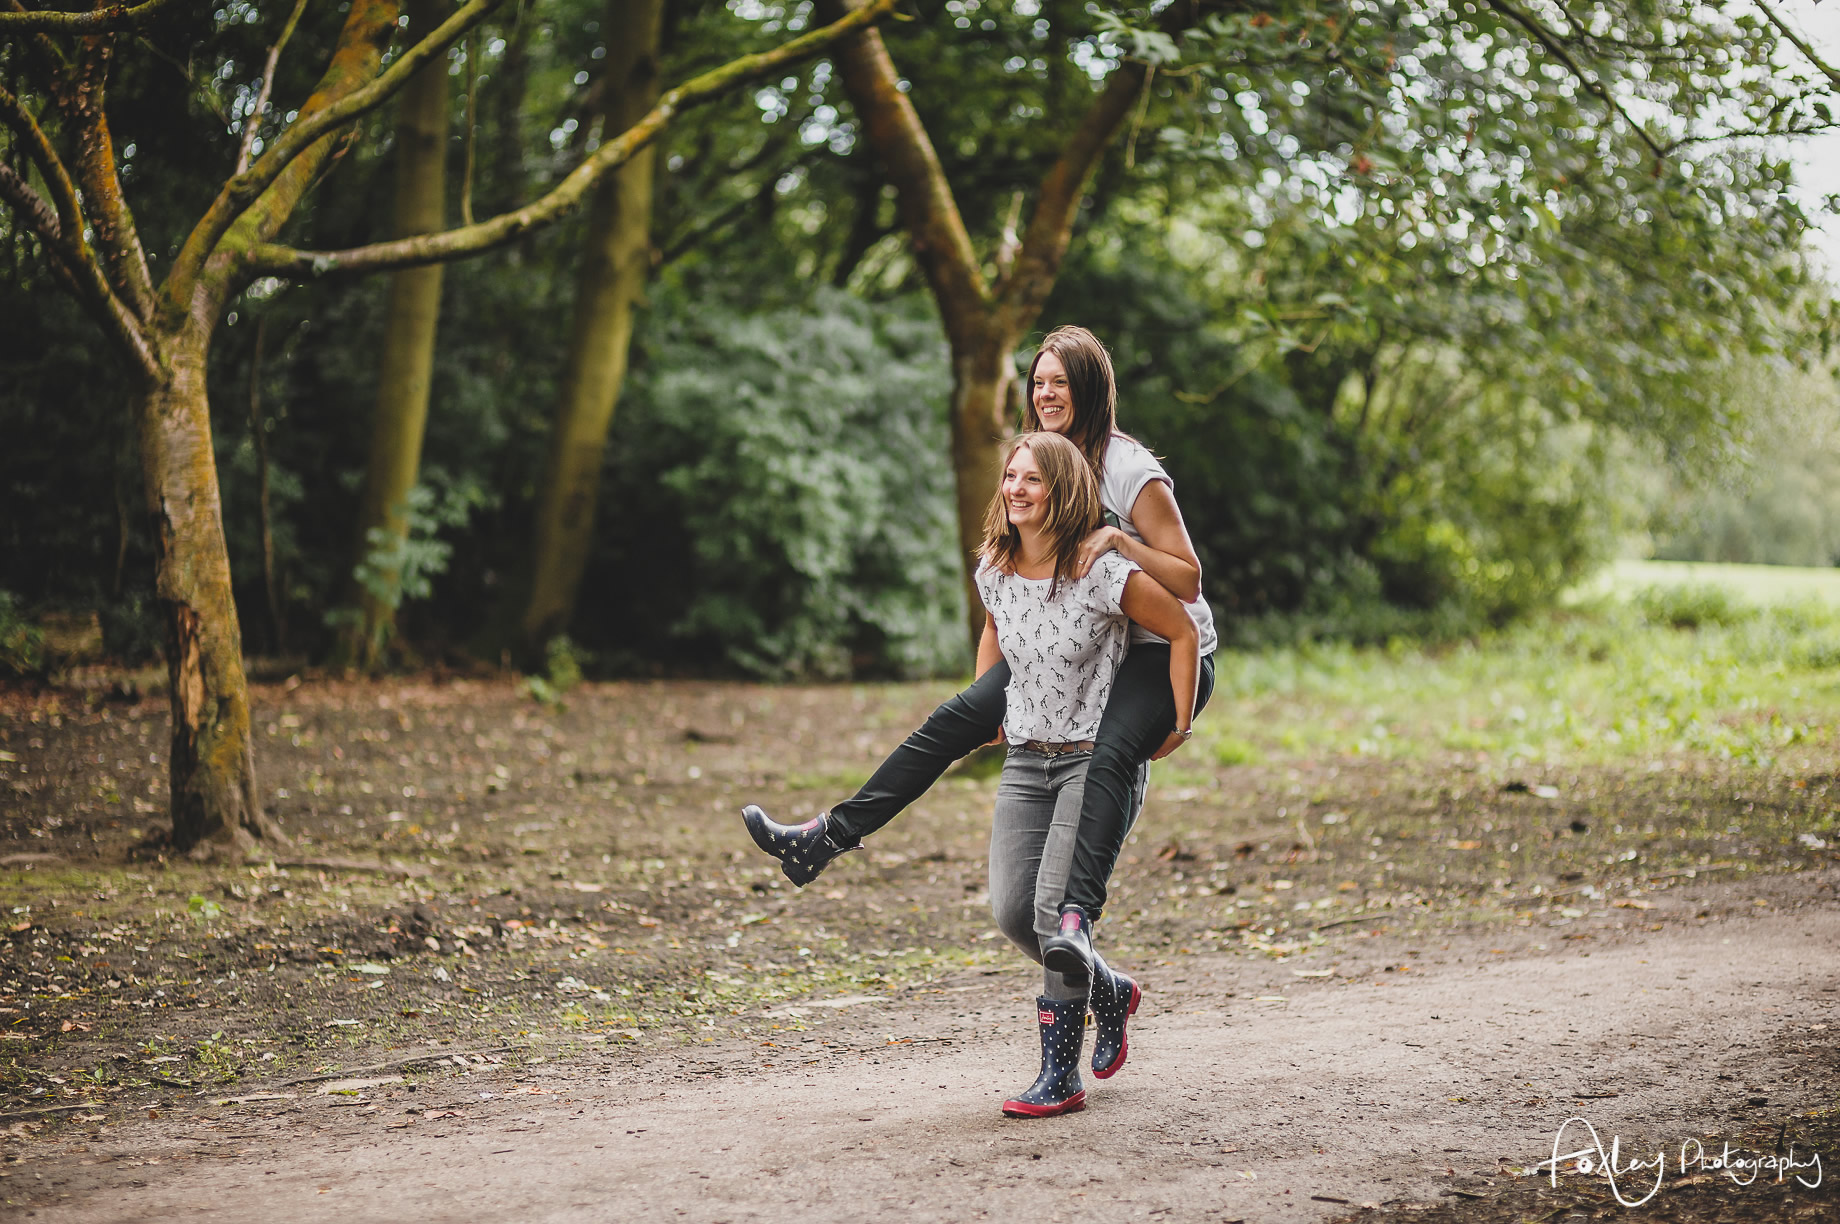 Fran-and-Eli-Pre-Wedding-Shoot-at-Heaton-Park-021